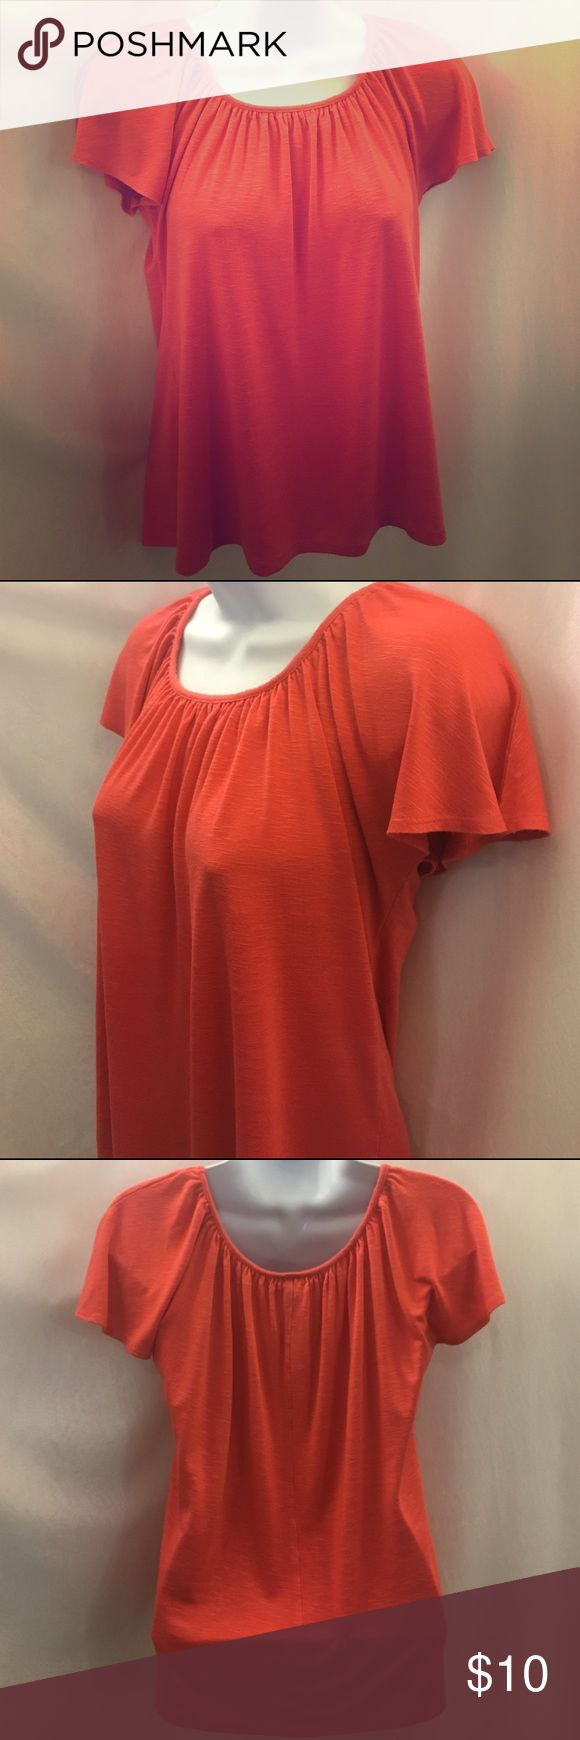 """J Coral Flowy Peasant Blouse Ruched Boat Neck Coral shade (pink-ish orange). """"J"""" brand. Rayon-spandex blend. Women's medium. Soft, loose fit, flowing blouse. Peasant style. Short sleeved. Slightly recruited fabric. Pre-owned. Tops Tees - Short Sleeve"""